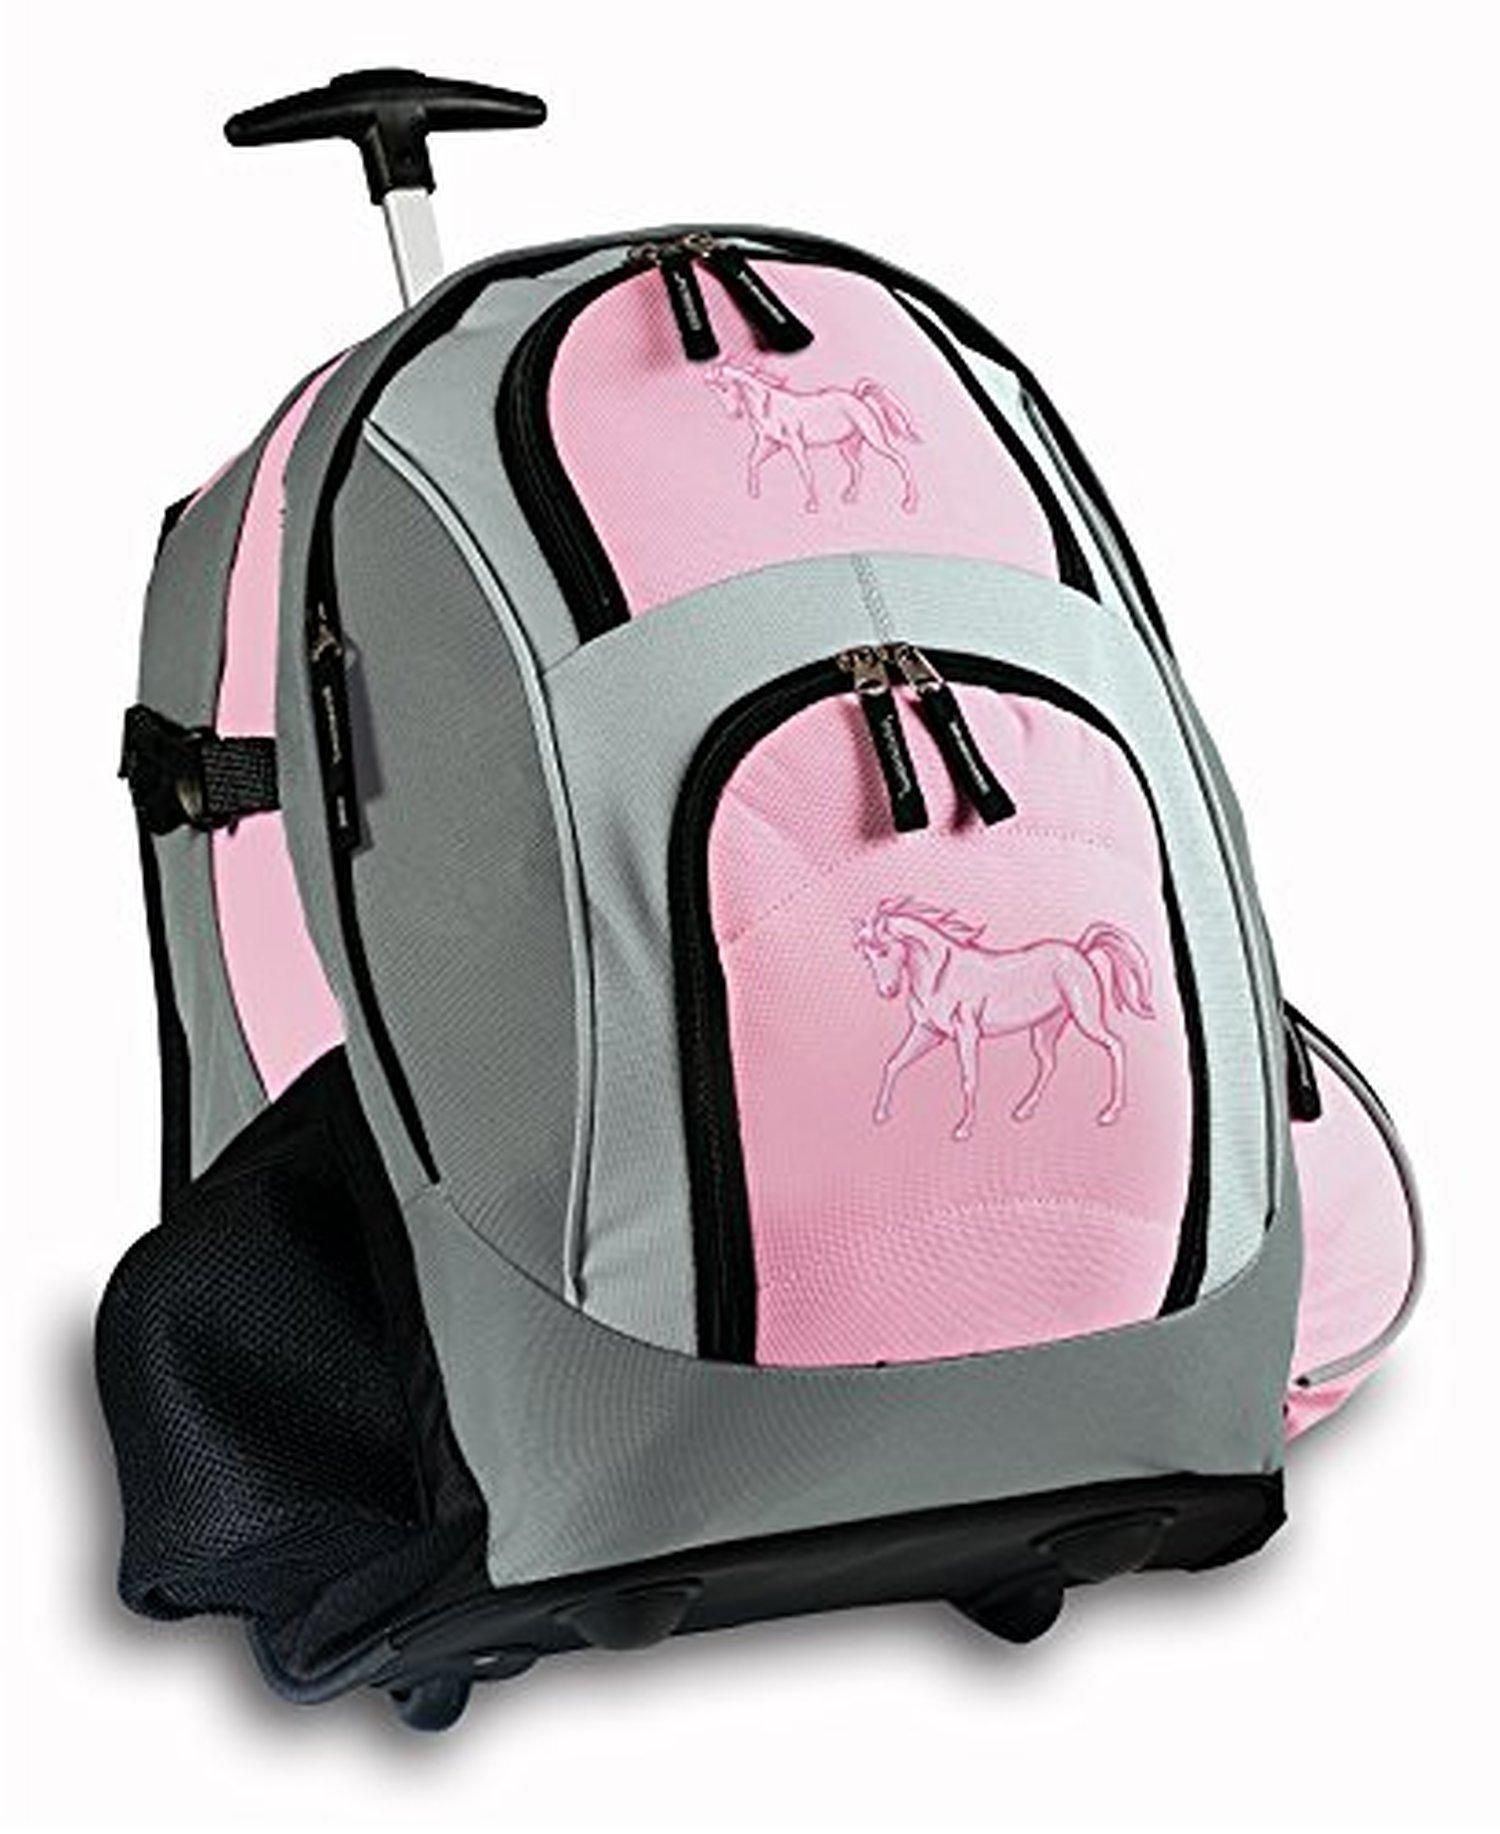 0456d91b19c4 Pink Horse Rolling Backpack Horses Wheeled Travel Bag School Trolley Bags  Horse - Brought to you by Avarsha.com